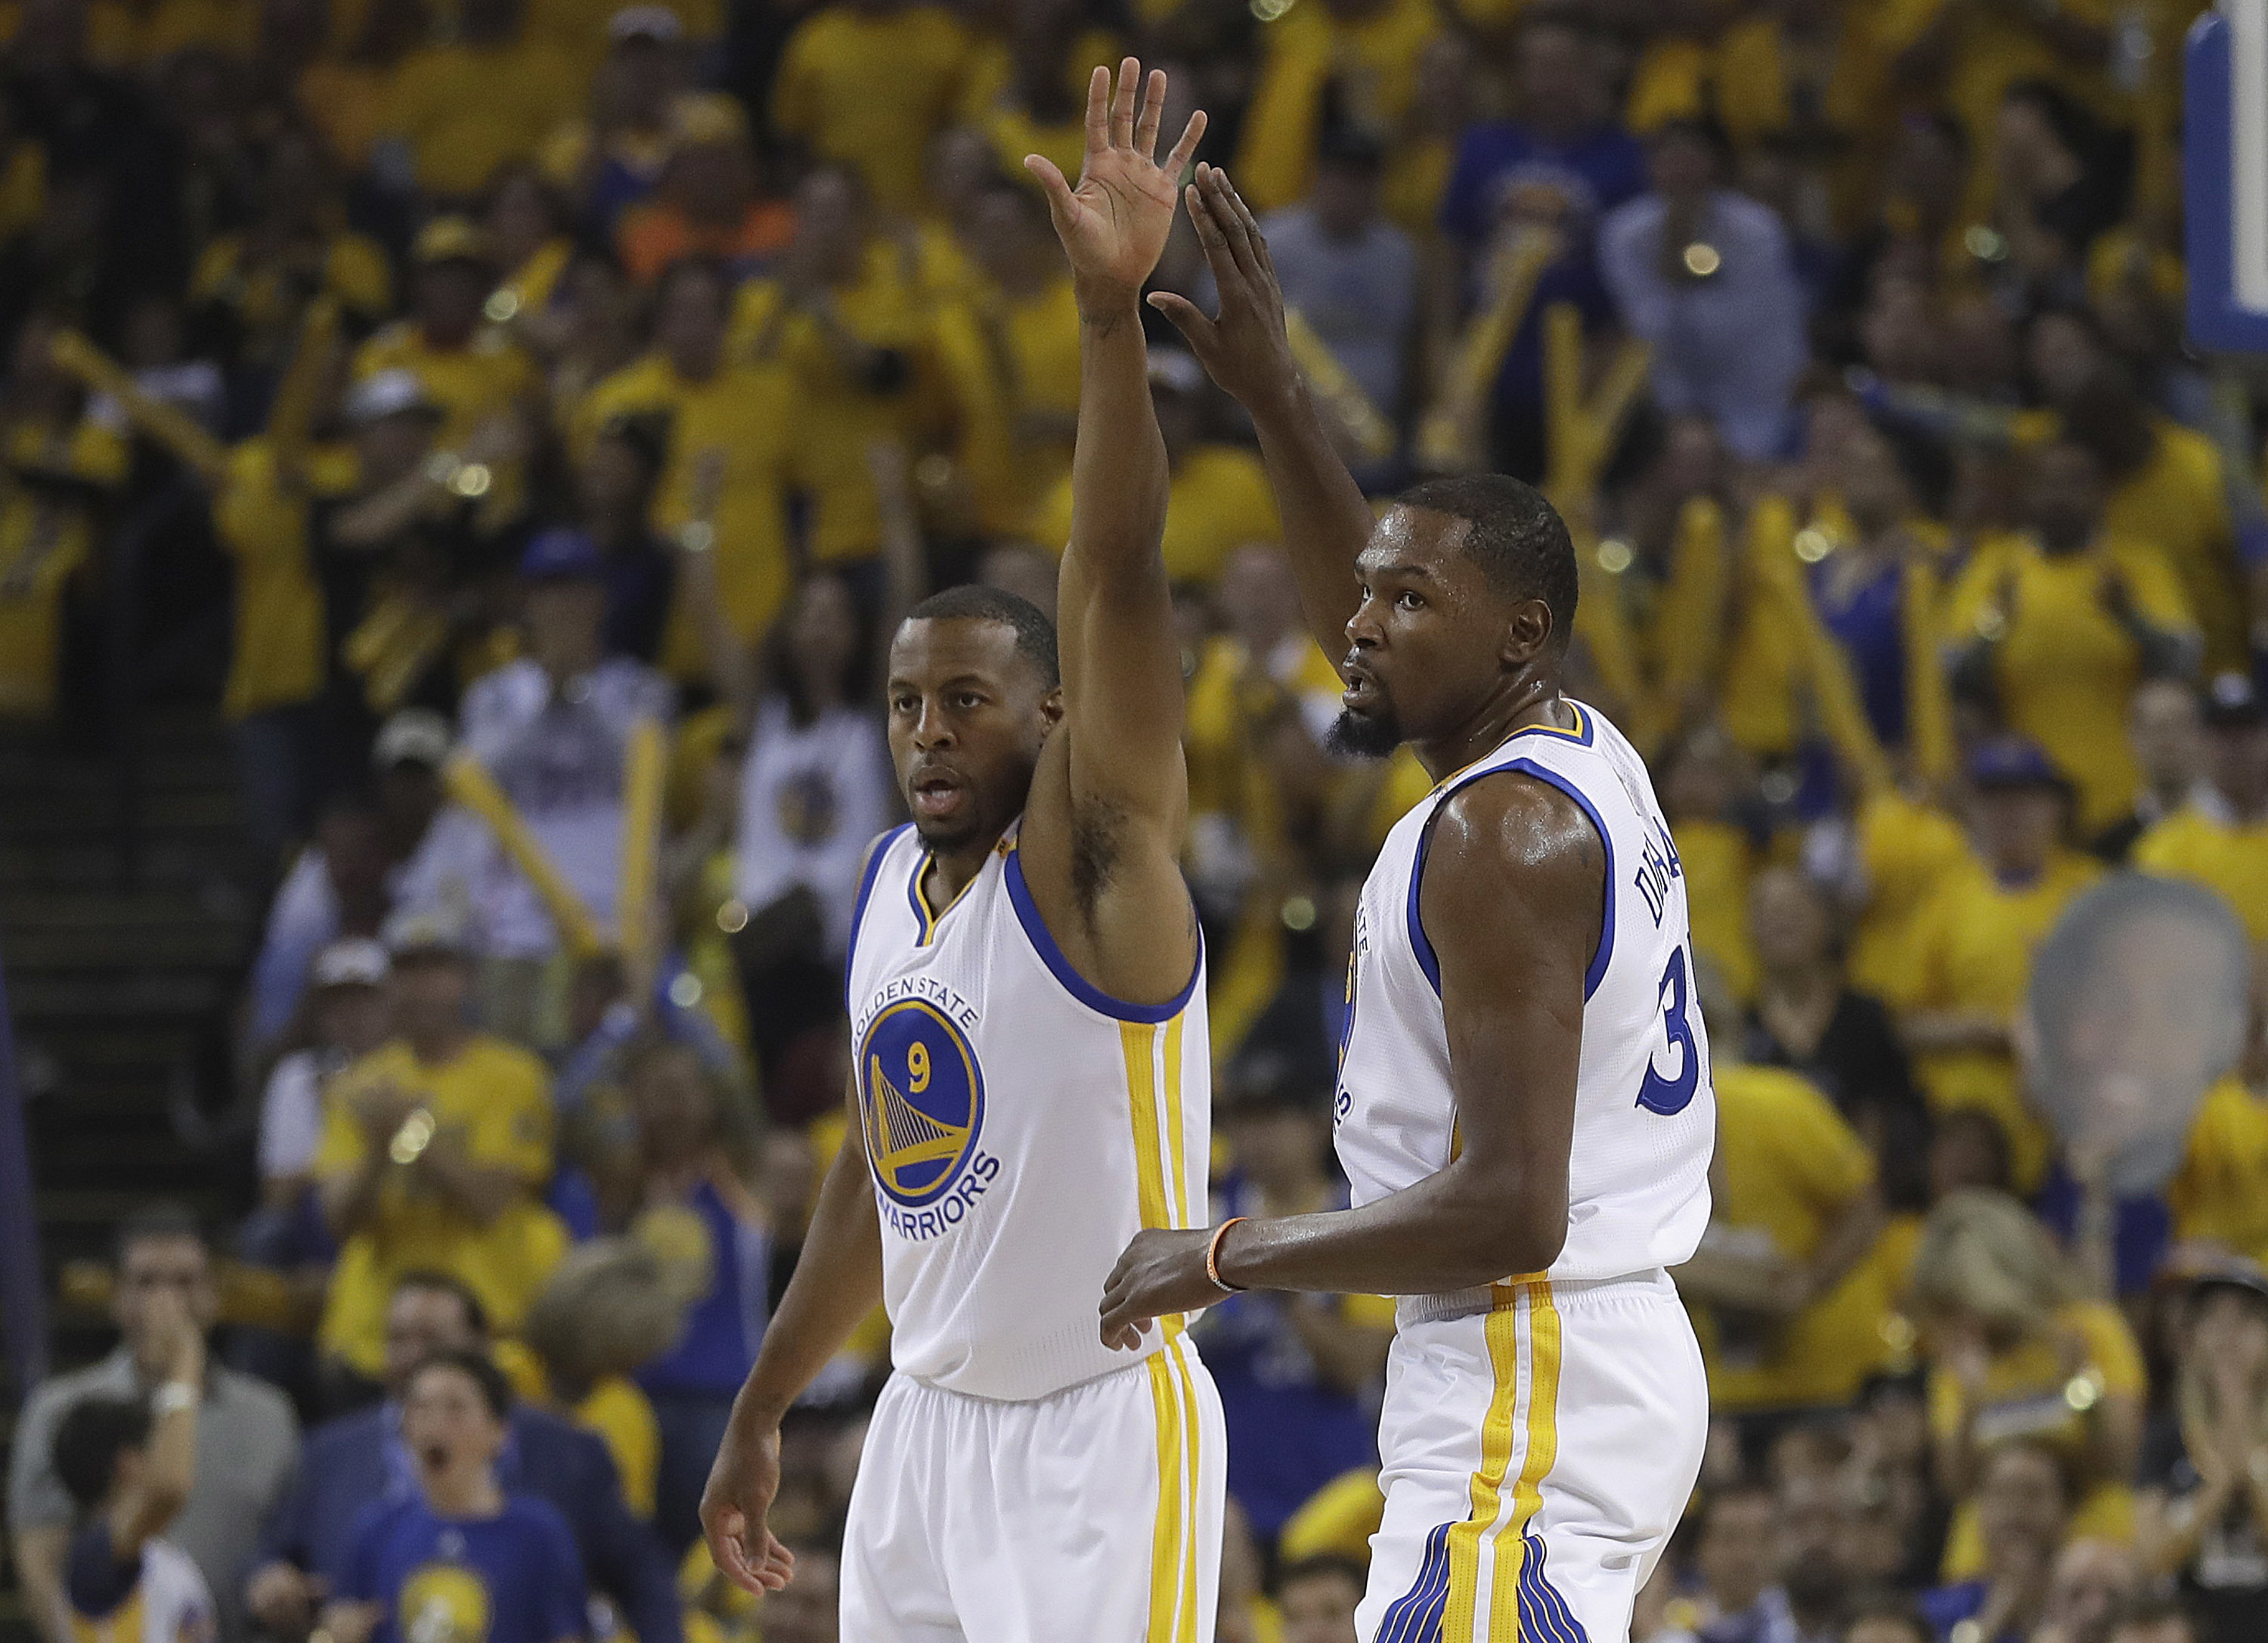 Golden State Warriors forward Andre Iguodala (9) and forward Kevin Durant (35) react after scoring against the Cleveland Cavaliers during the first half of Game 1 of basketball´s NBA Finals in Oakland, Calif., Thursday, June 1, 2017. (AP Photo/Marcio Jose Sanchez)